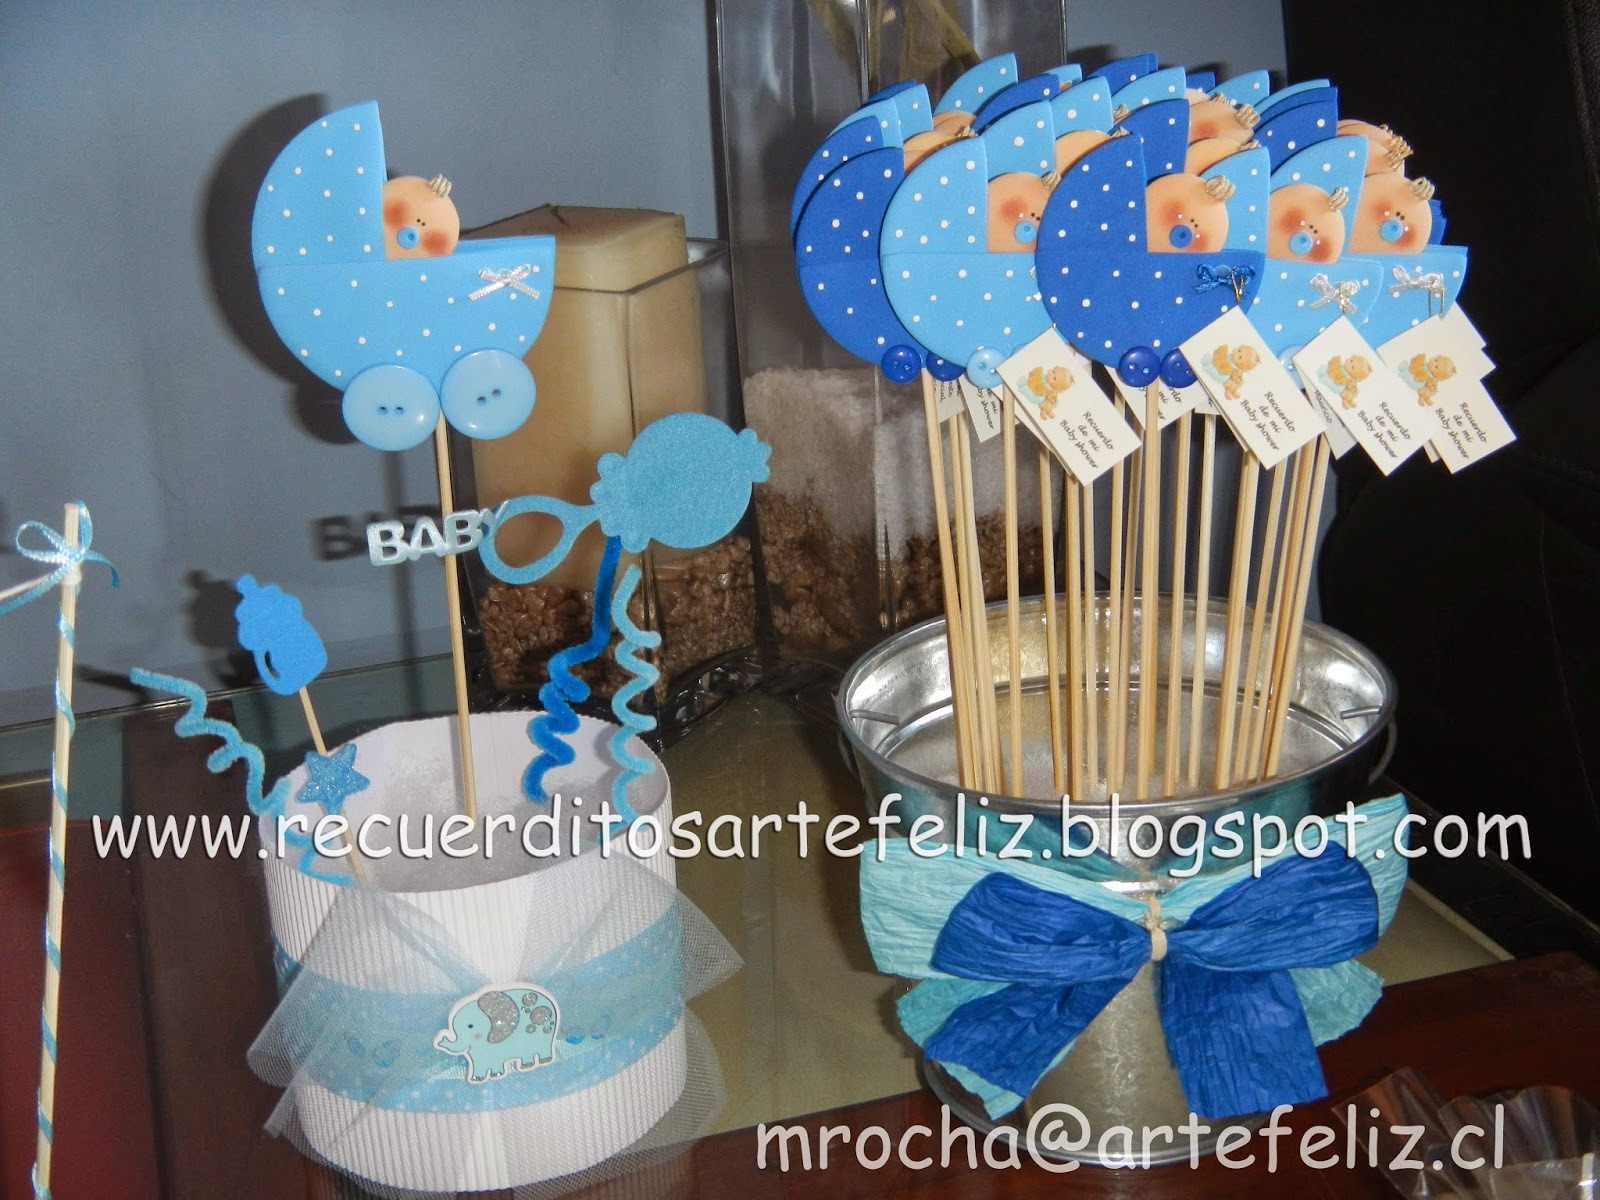 Encintados y recuerditos artefeliz for Mesa baby shower nino